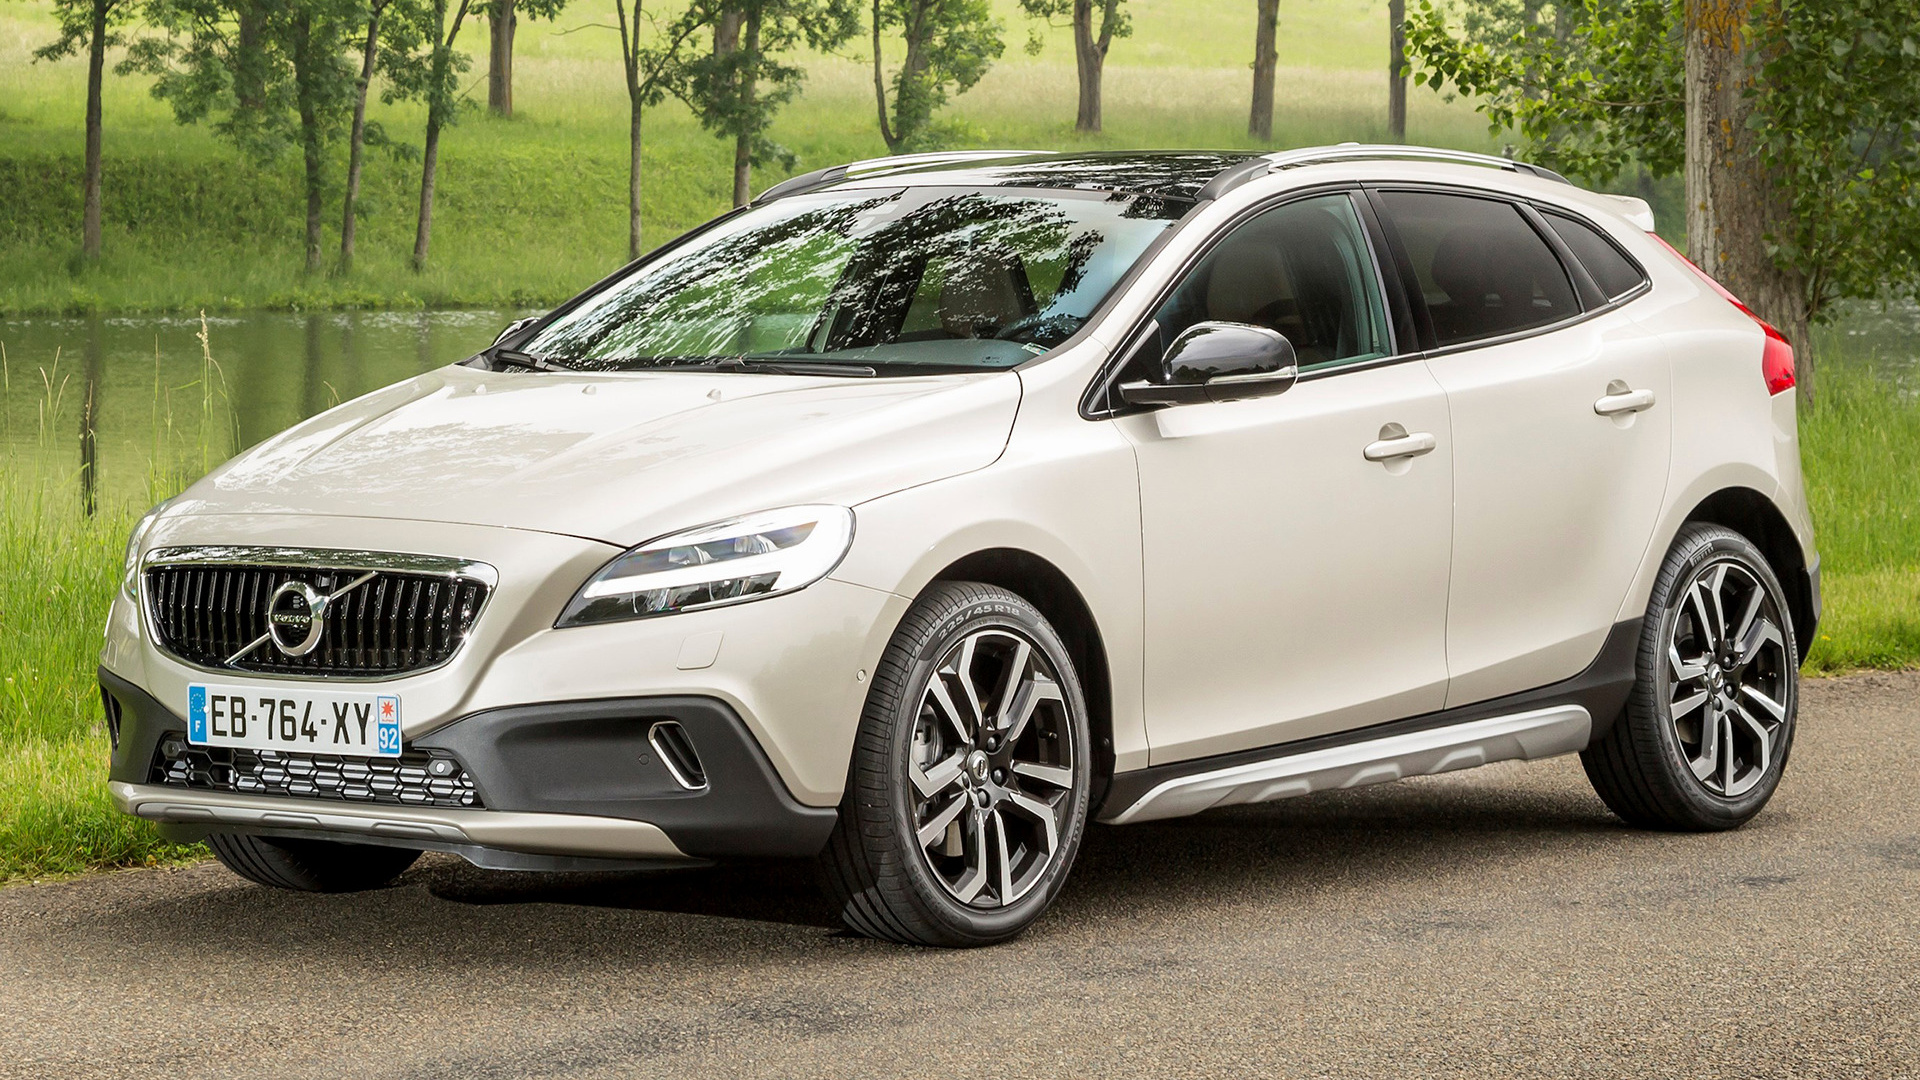 volvo v40 cross country 2016 wallpapers and hd images car pixel. Black Bedroom Furniture Sets. Home Design Ideas